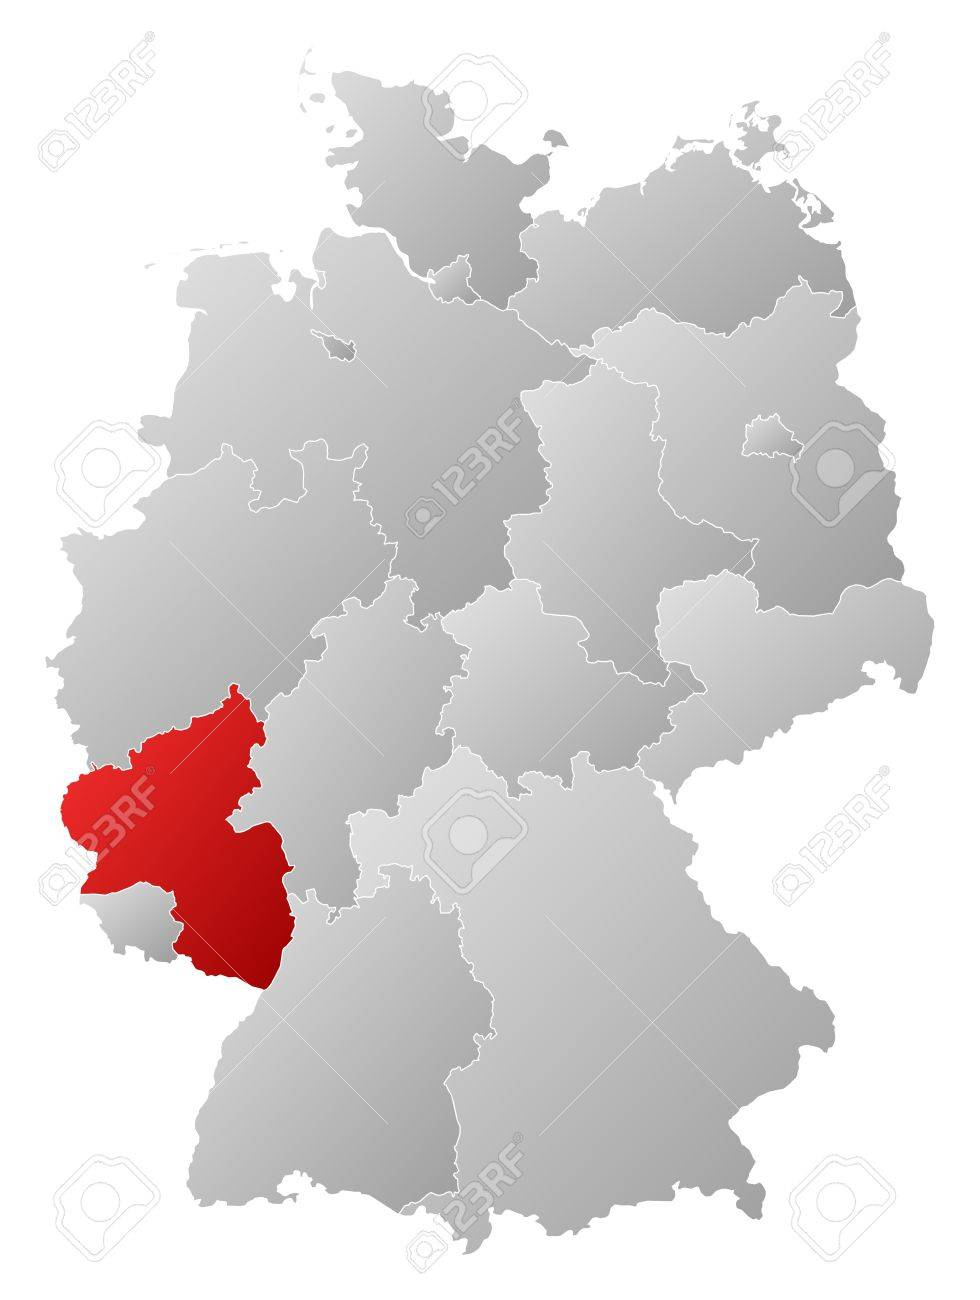 Map Of Germany Rhineland.Political Map Of Germany With The Several States Where Rhineland Palatinate